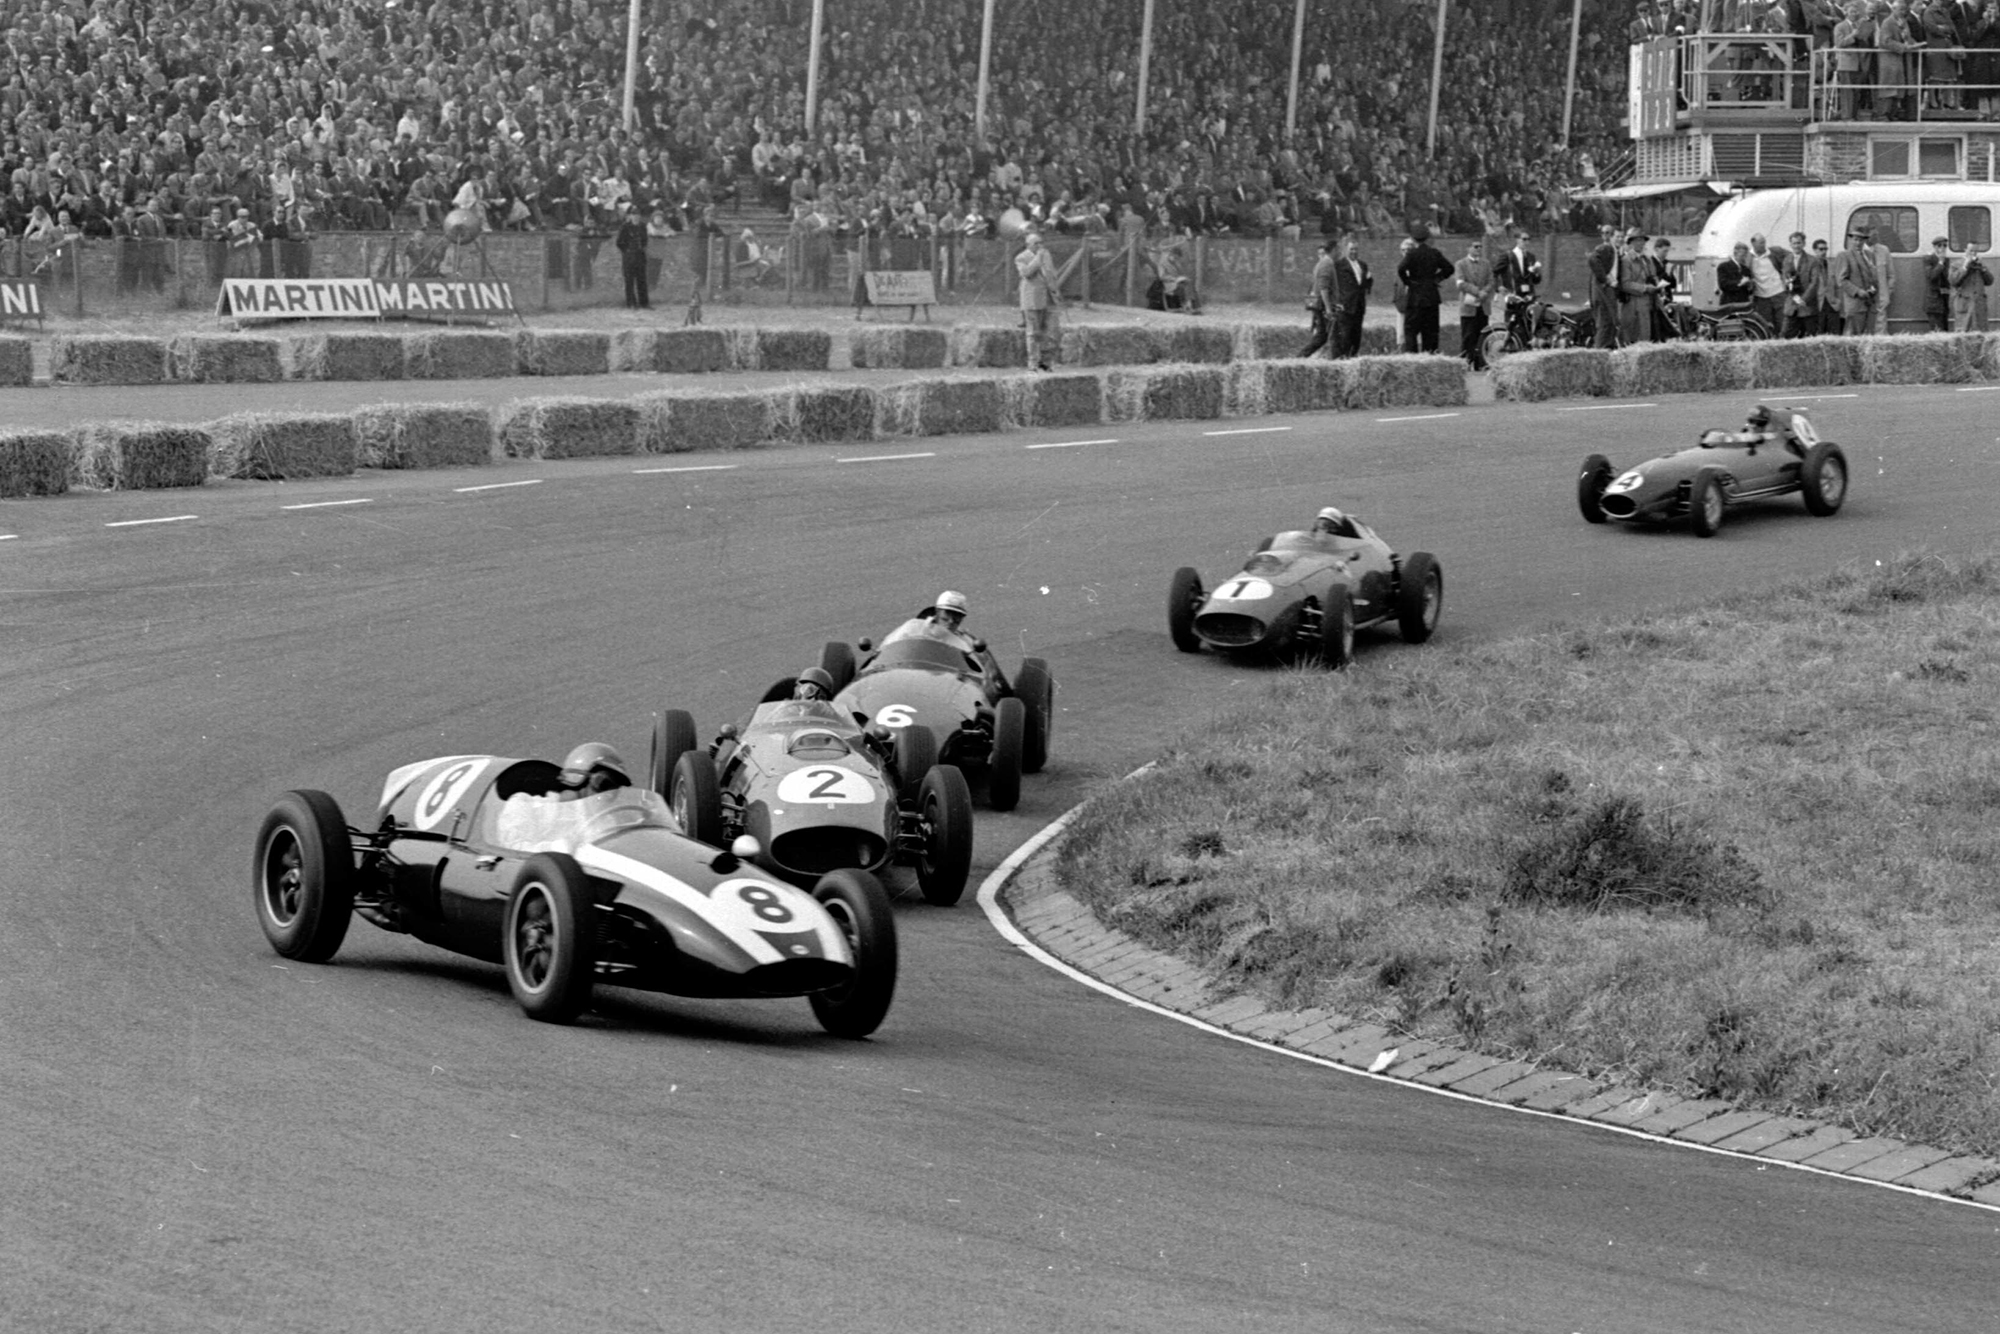 Jack Brabham driving a Cooper T51-Climax leads Tony Brooks' Ferrari Dino 246 and Harry Schell's BRM P25.